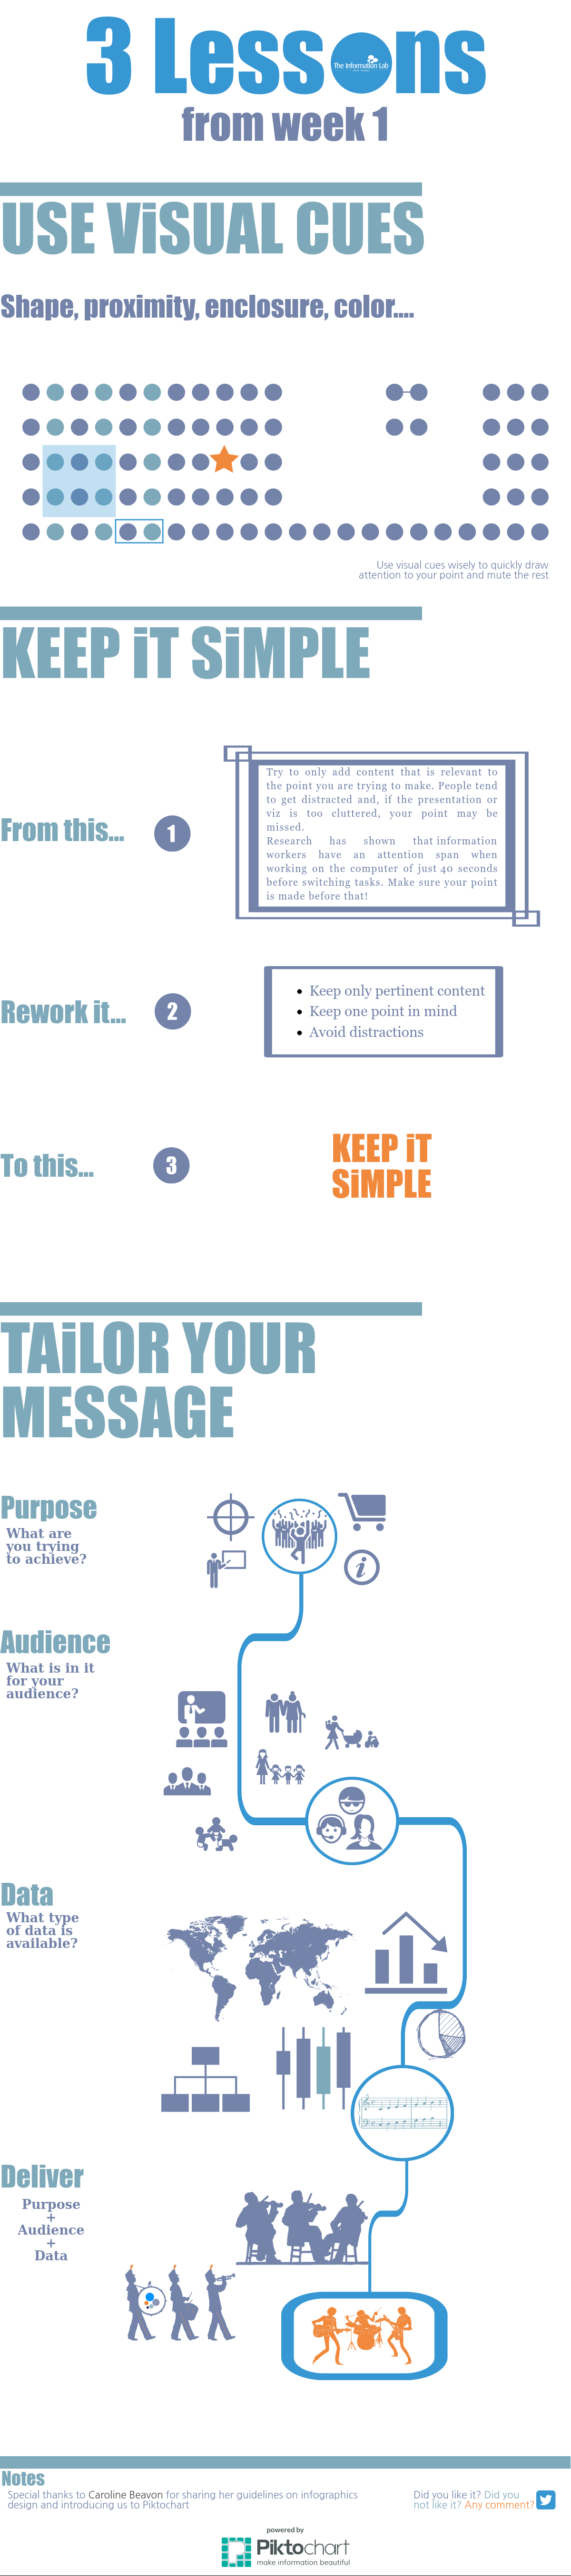 Infographic for Visual Cues, Simplicity and Tailoring